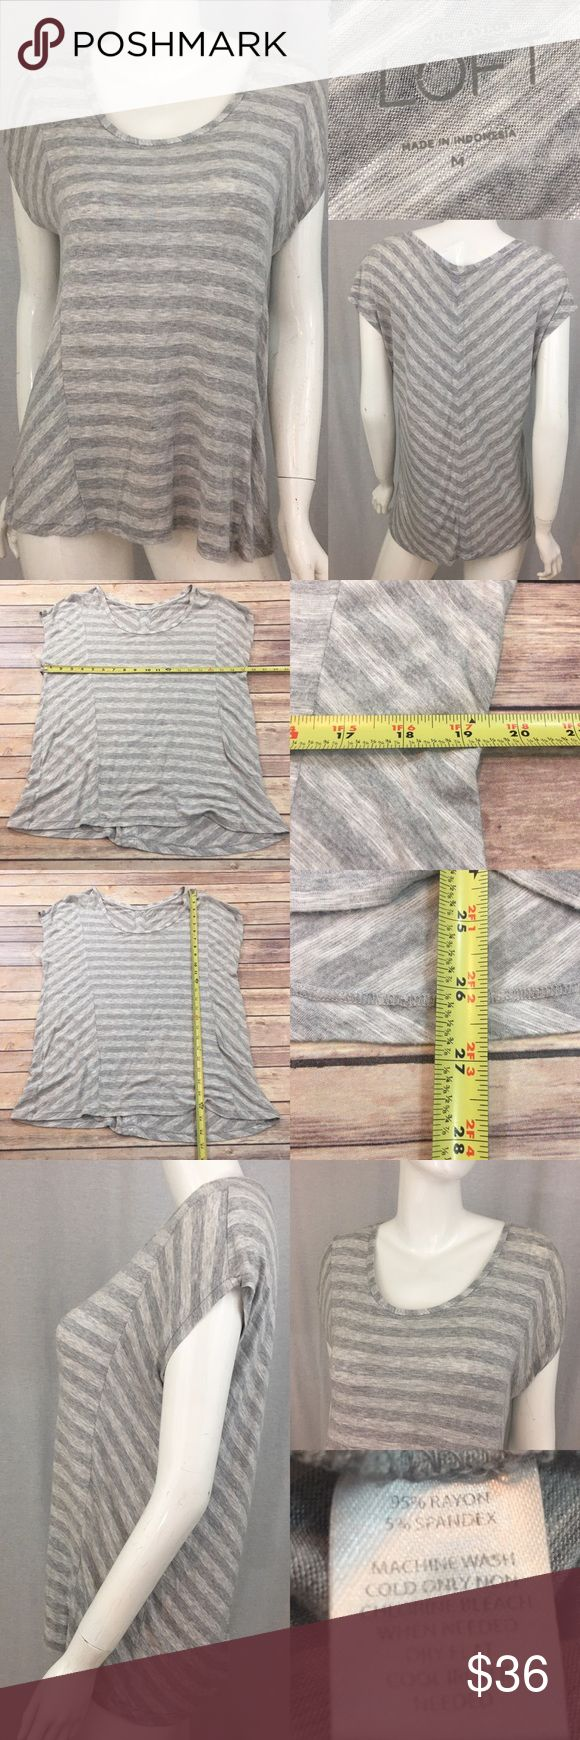 🍭Size Medium LOFT Gray Striped Short Sleeve Top Measurements are in photos. Normal wash wear, mild piling, no other flaws.   I do not comment to my buyers after purchases, do to their privacy. If you would like any reassurance after your purchase that I did receive your order, please feel free to comment on the listing and I will promptly respond. I ship everyday and I always package safely. Thanks! LOFT Tops